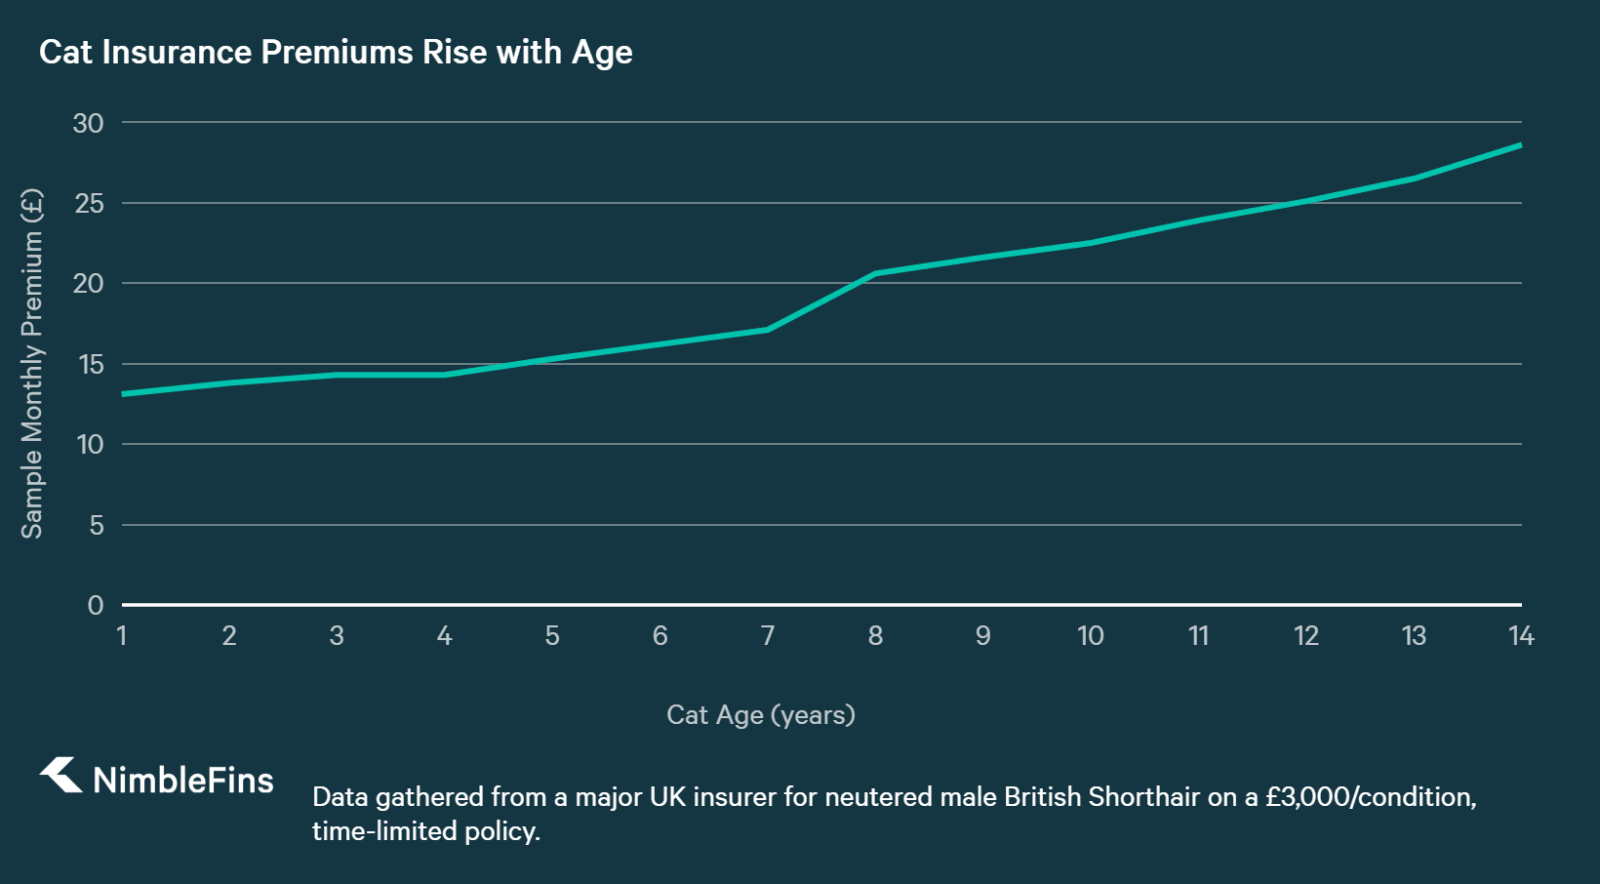 chart showing how Cat Insurance Premiums Rise with Age